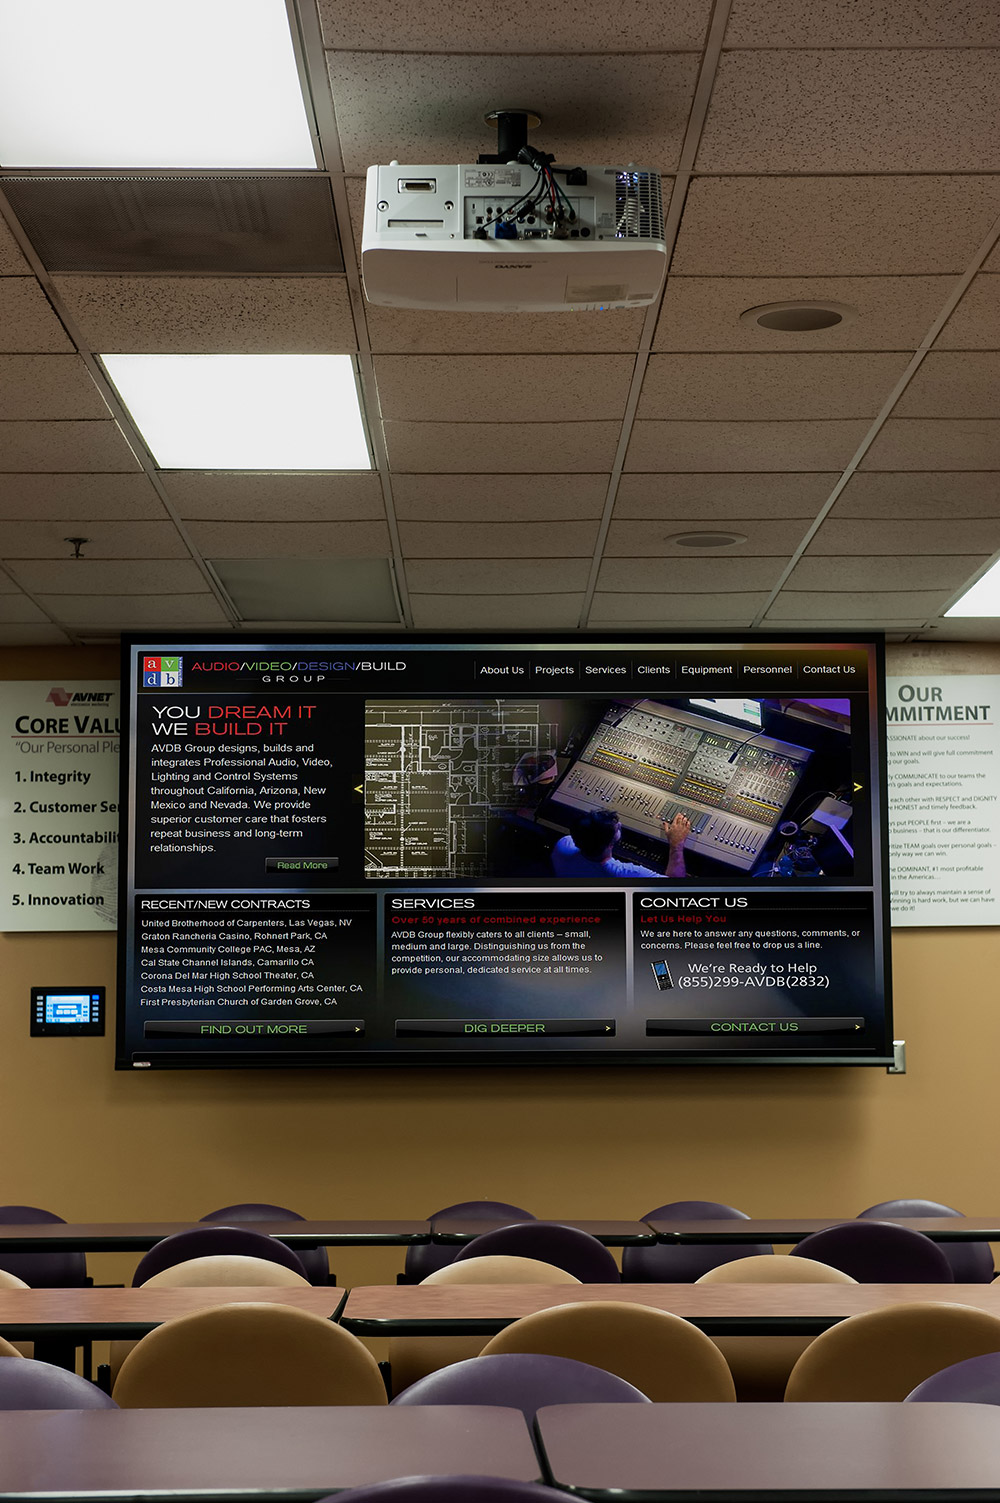 A TouchLink touchpanel is used to select inputs for presentations during company events and <nobr>all-hands</nobr> meetings in the café.